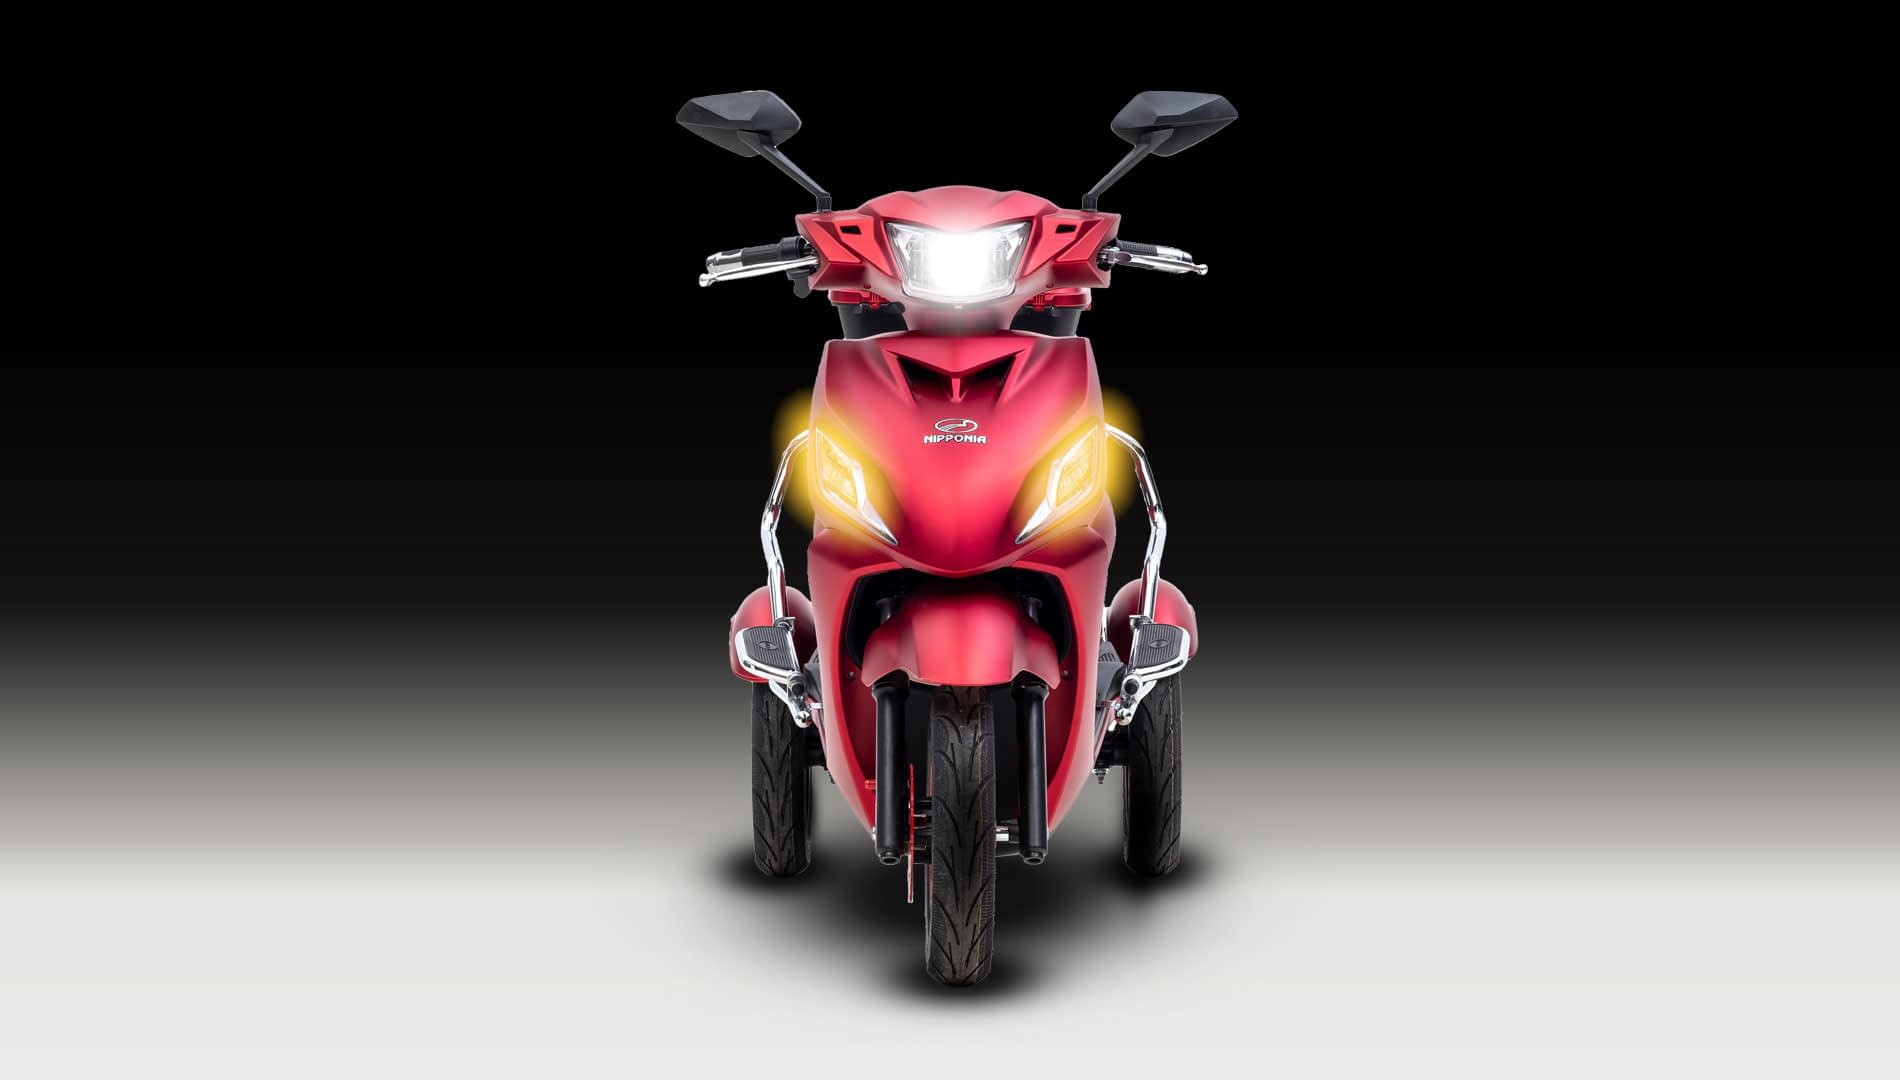 Driewielscooter Pride Front Light